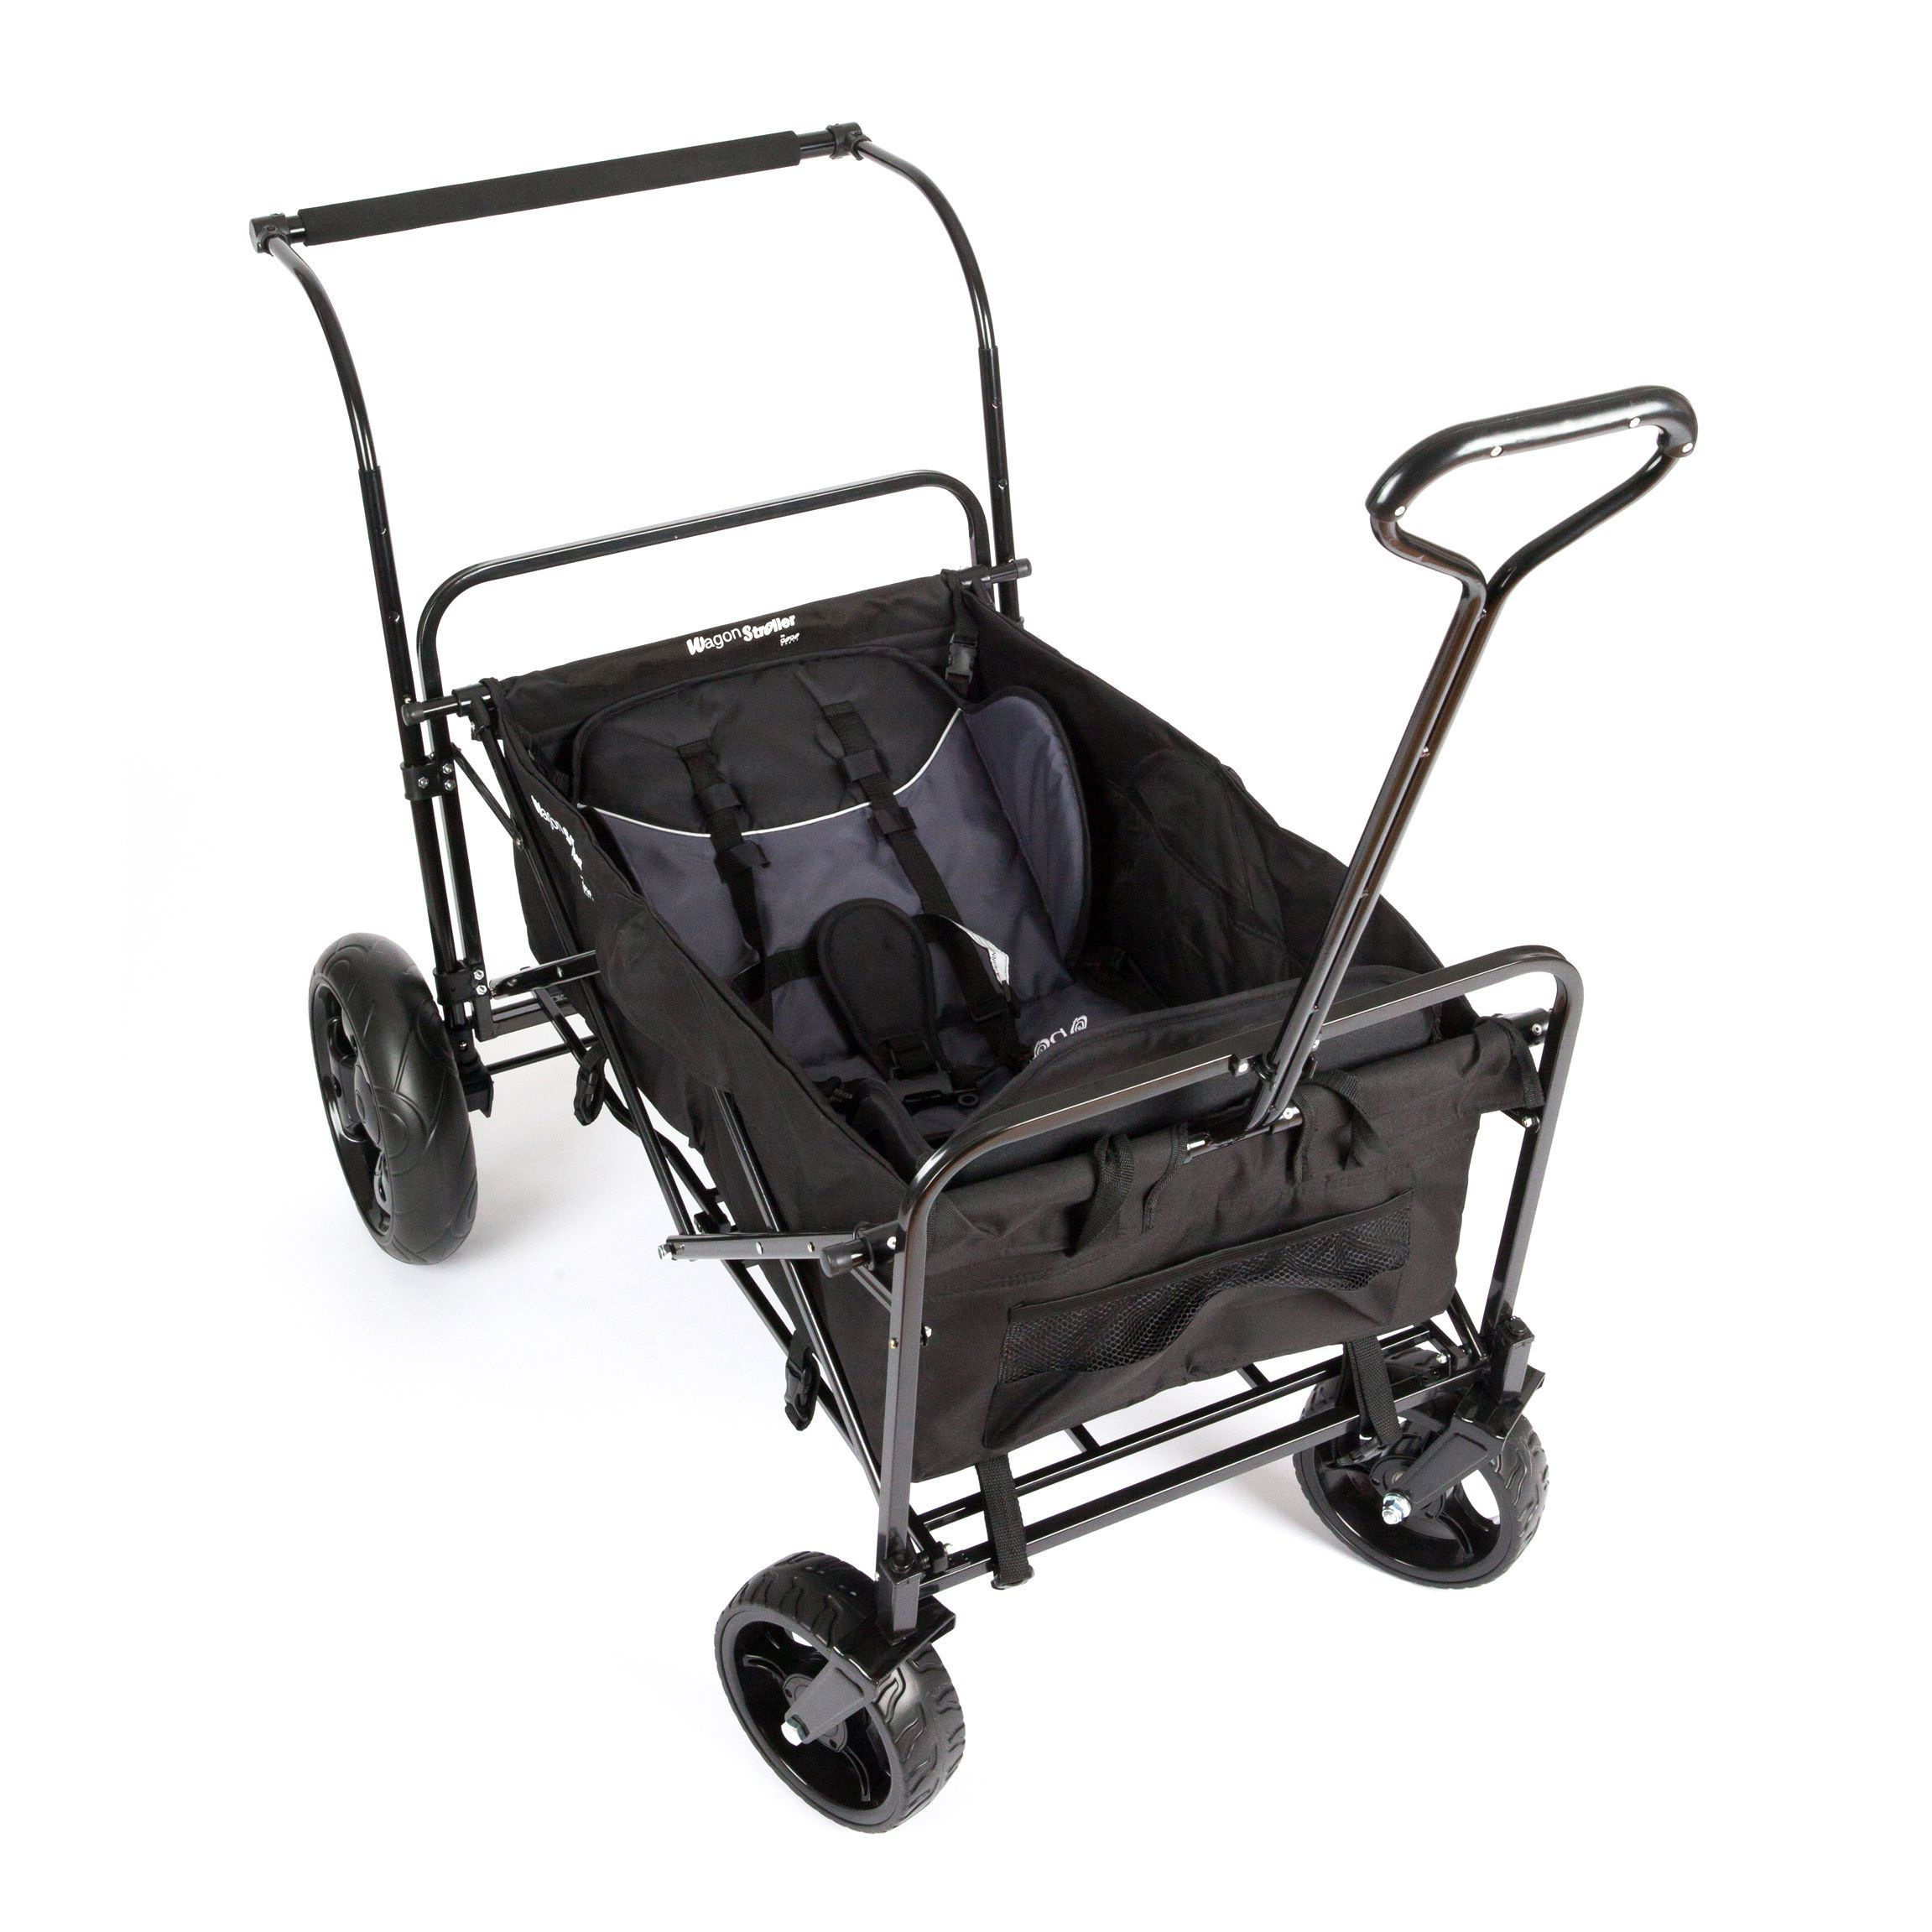 GoGo Babyz Double Wagon Stroller in Black by GoGo Babyz